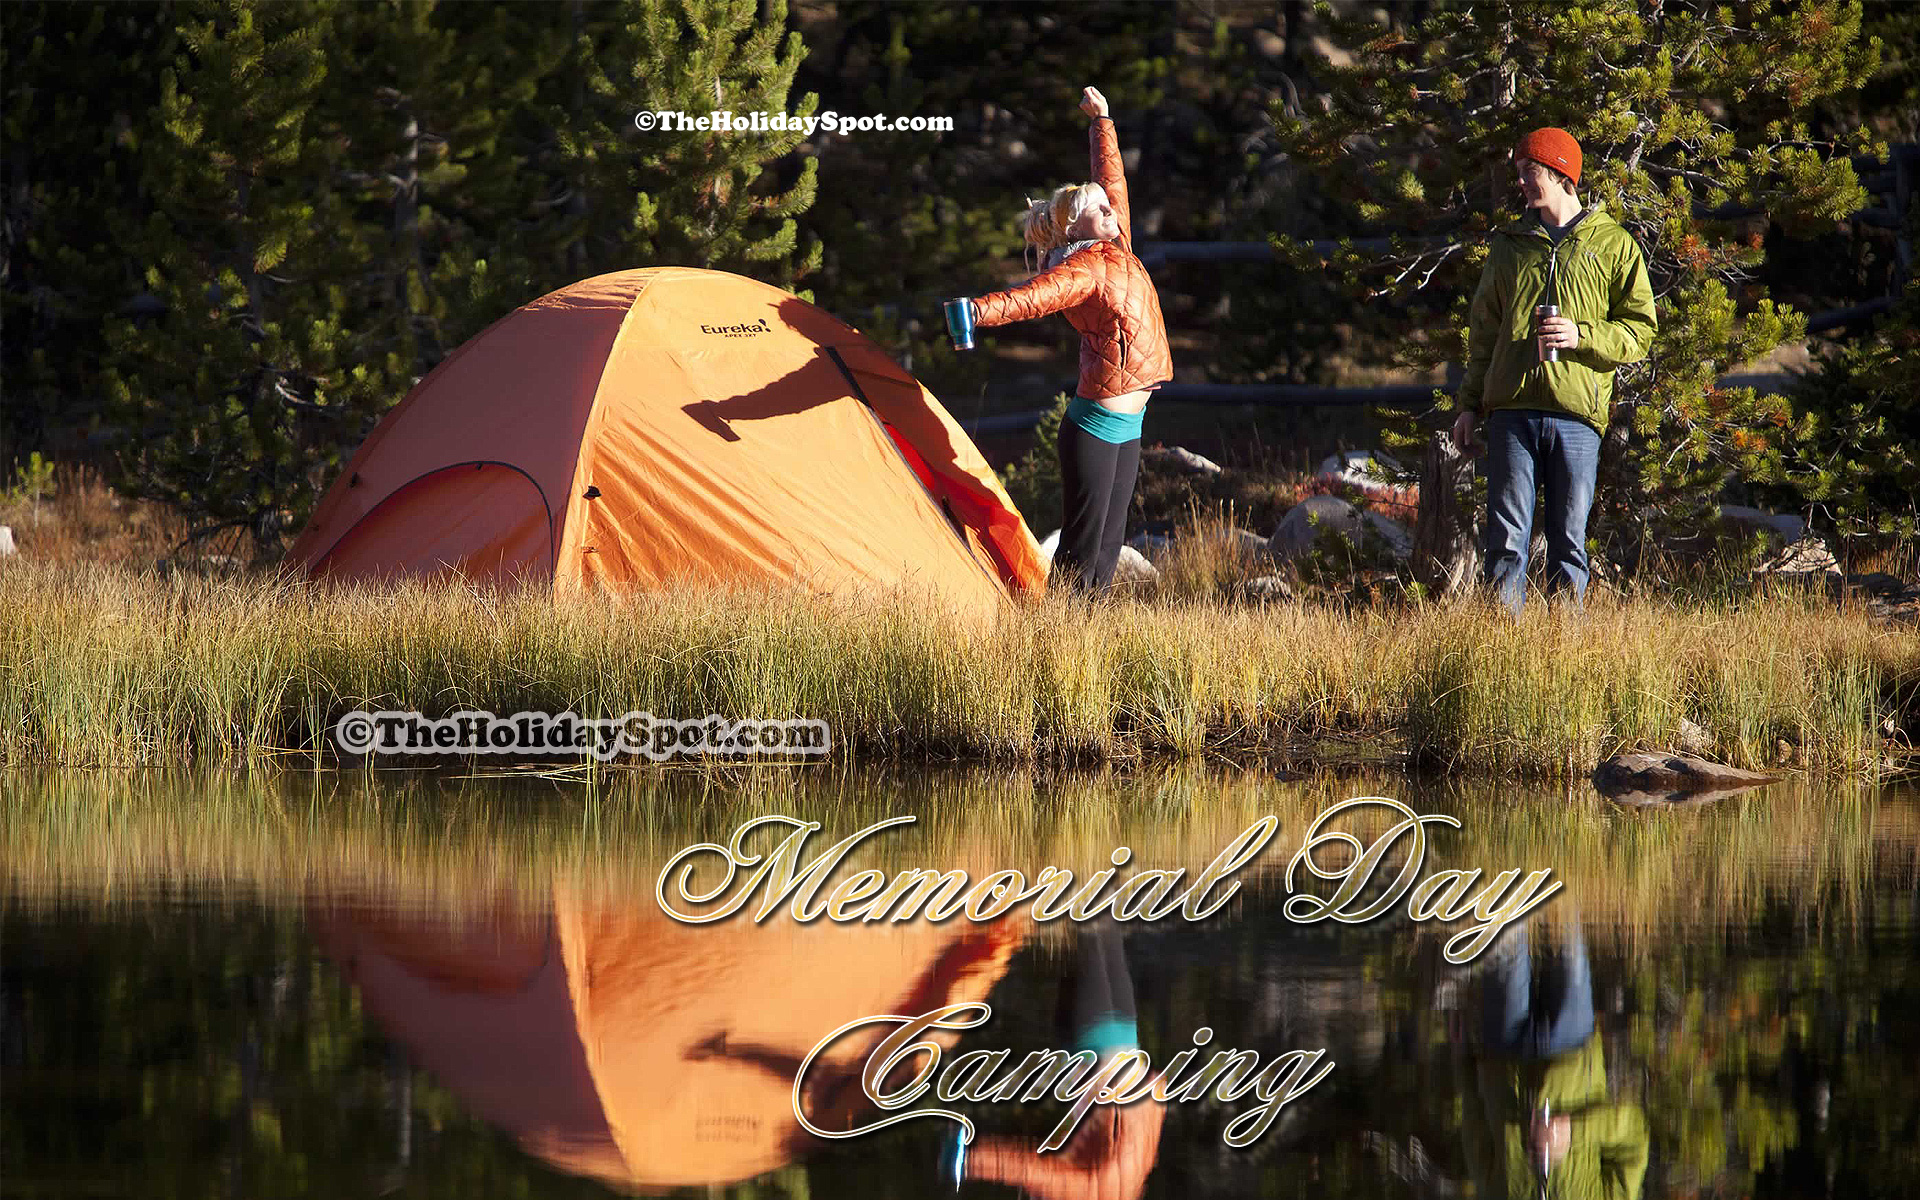 Funny Camping Wallpaper Wallpapersafari